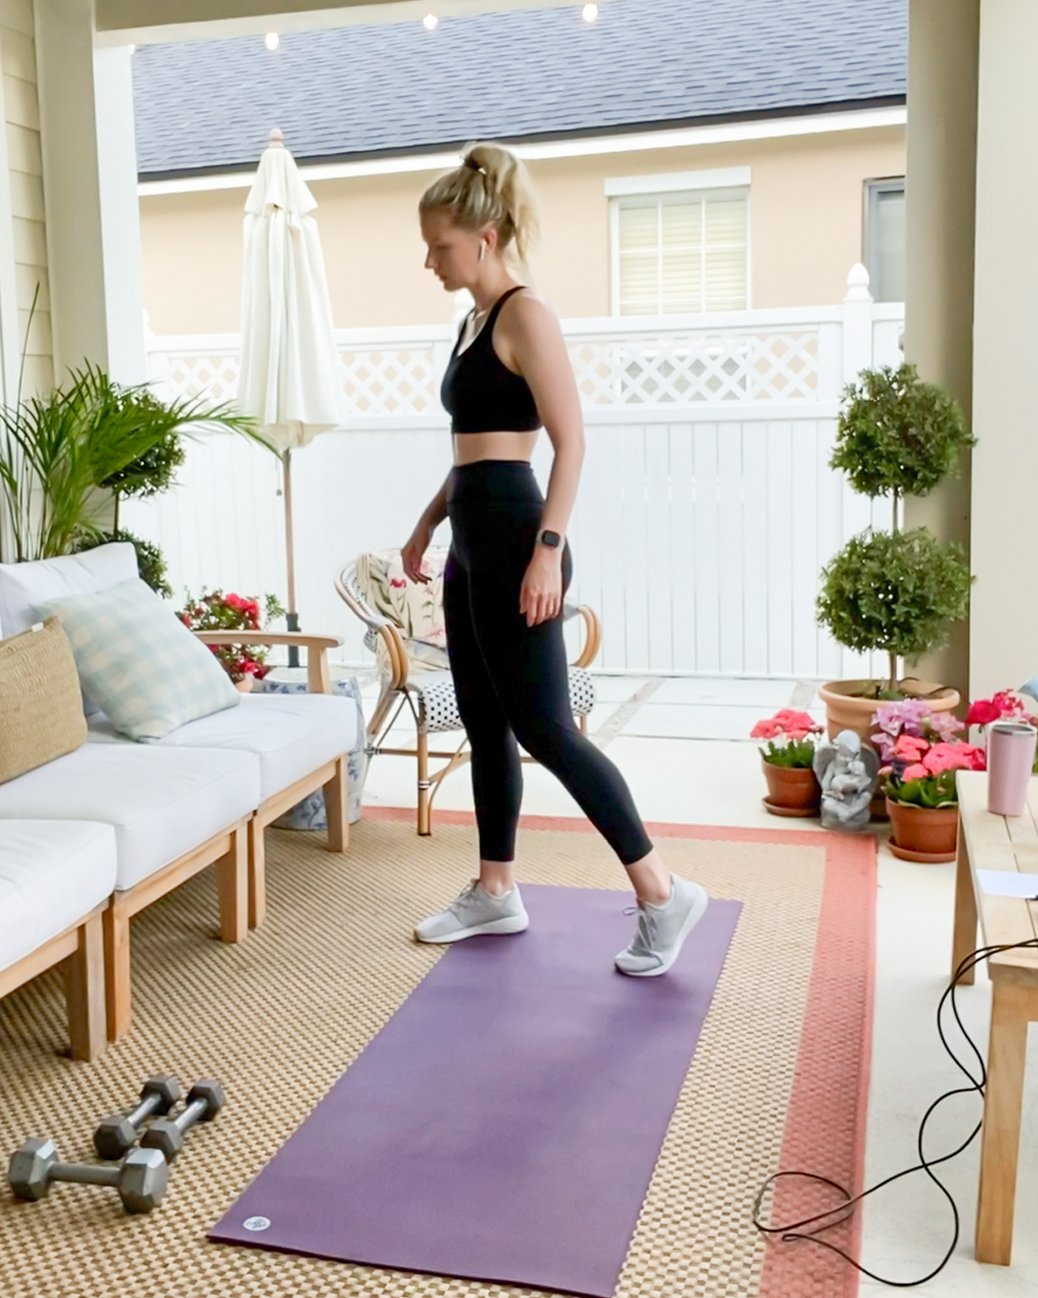 At Home Work out 2 - Look